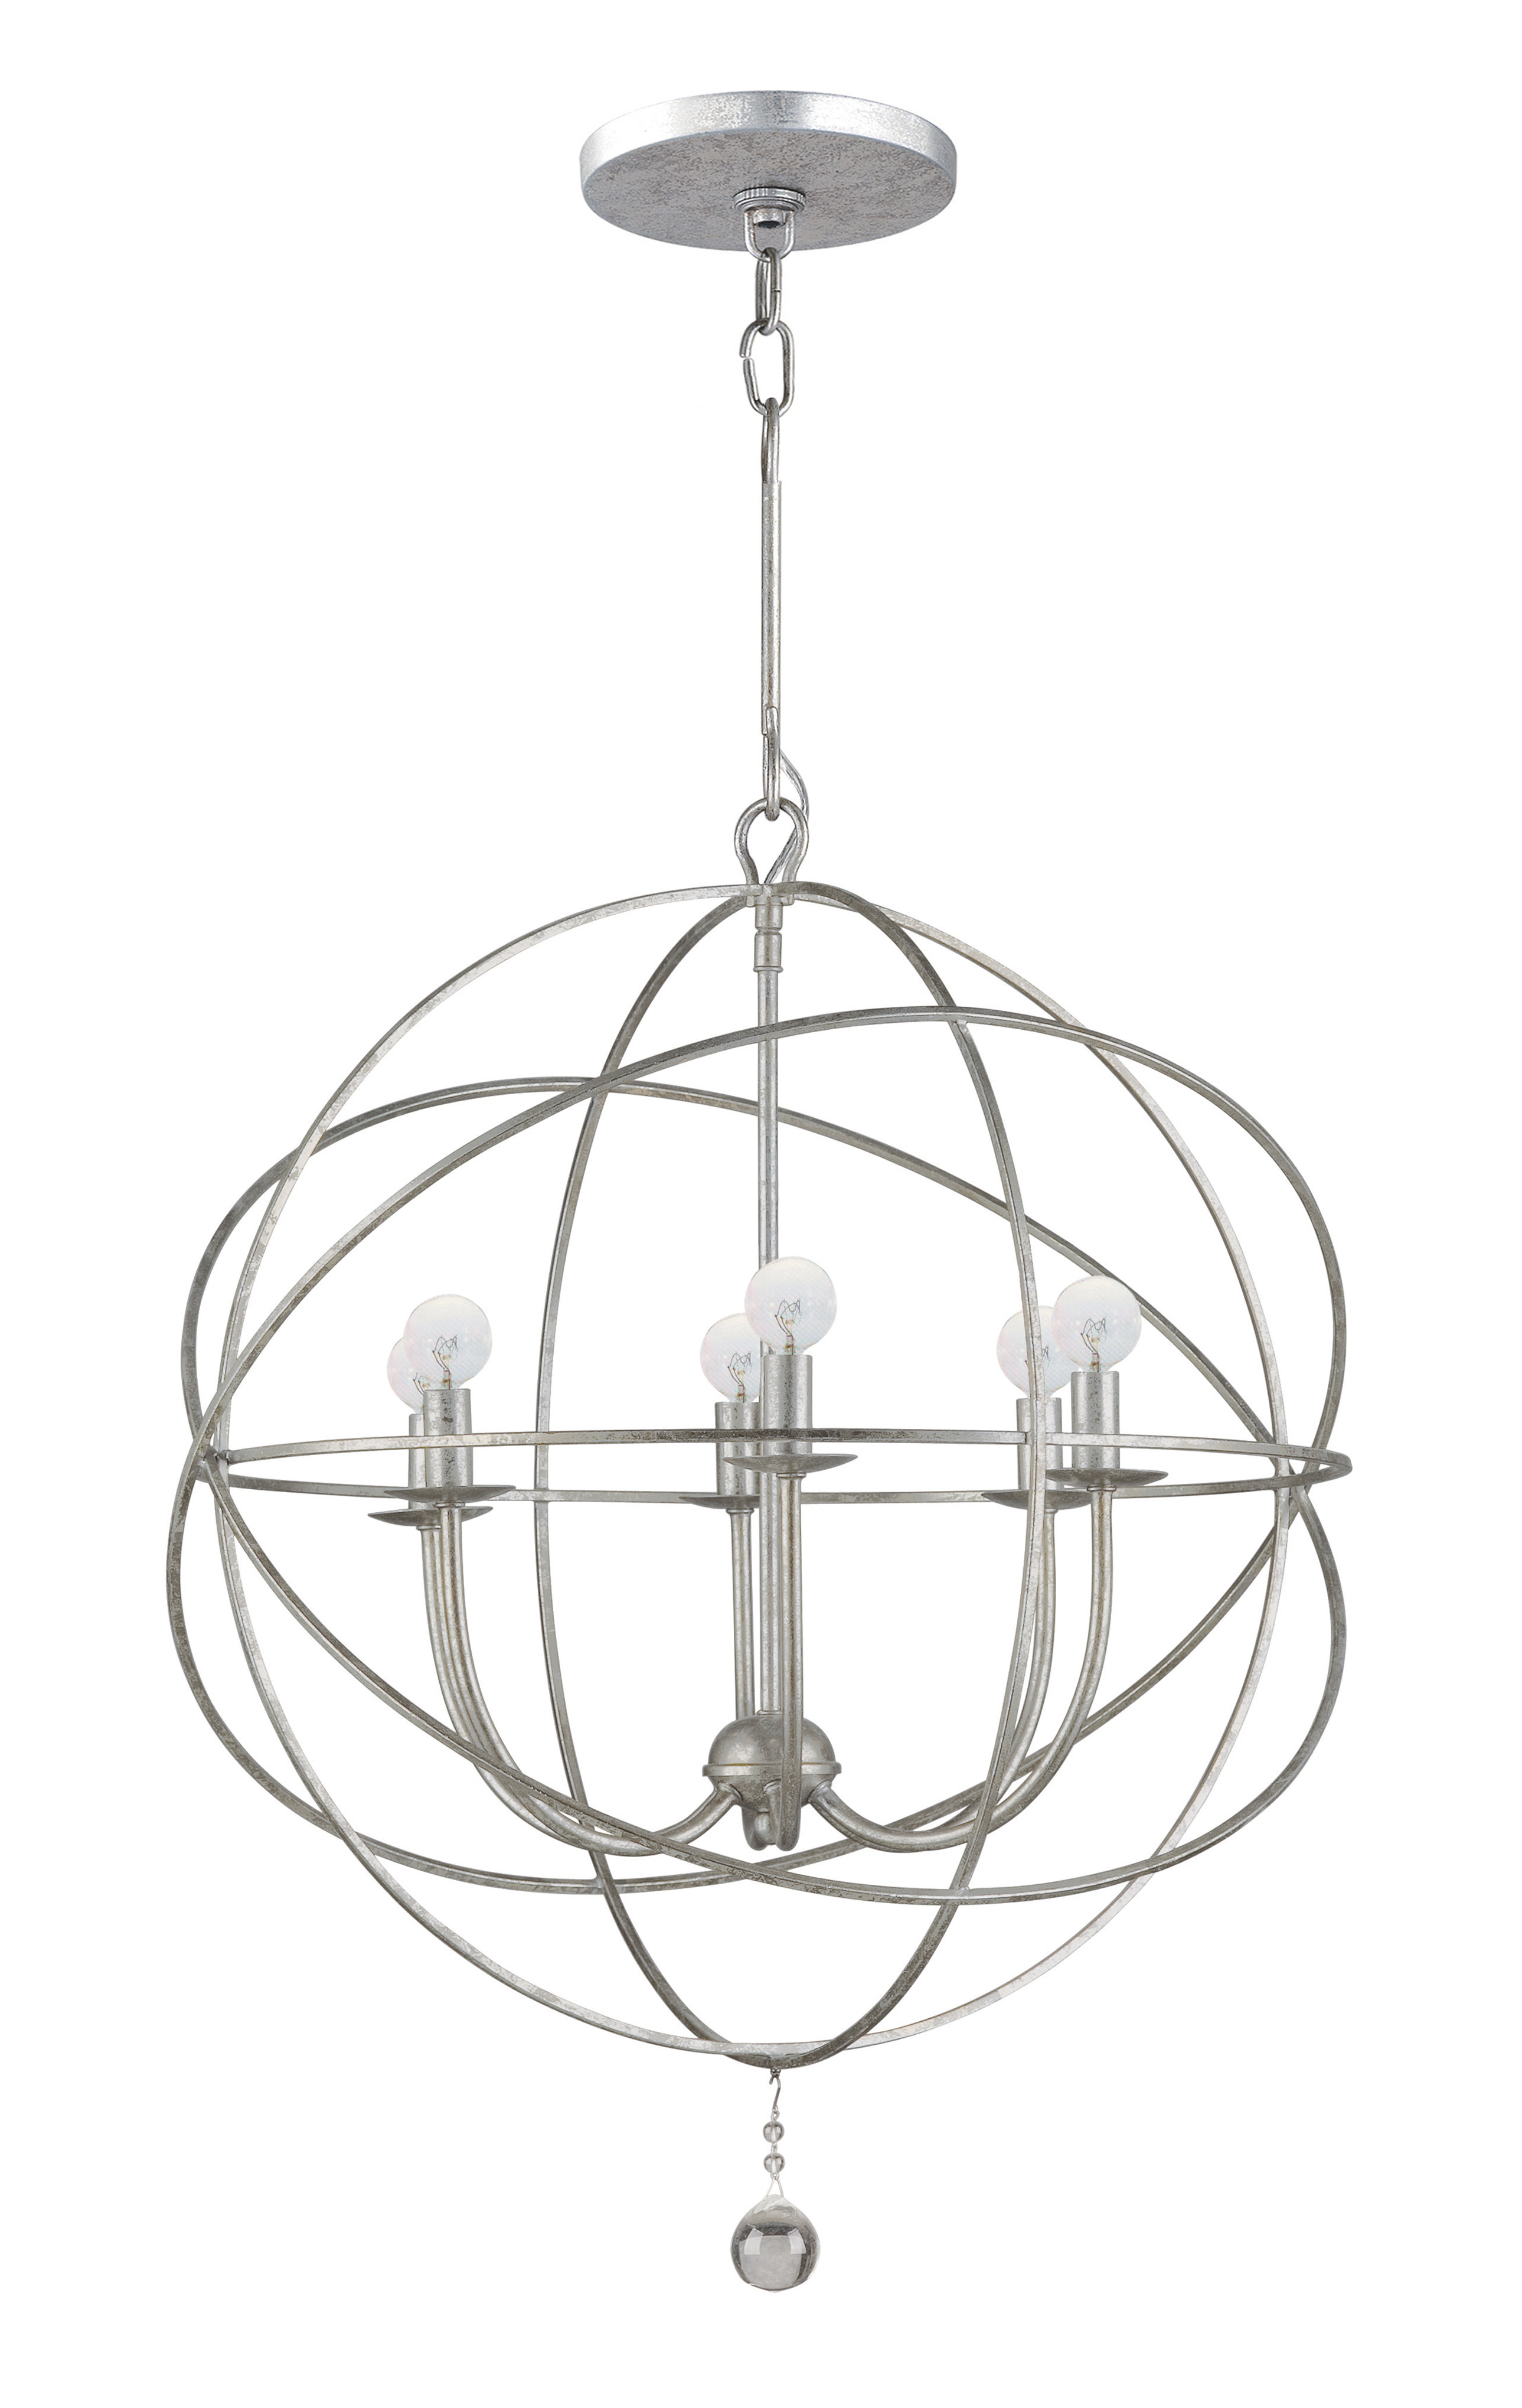 Gregoire 6 Light Globe Chandelier In Popular Alden 6 Light Globe Chandeliers (View 15 of 25)